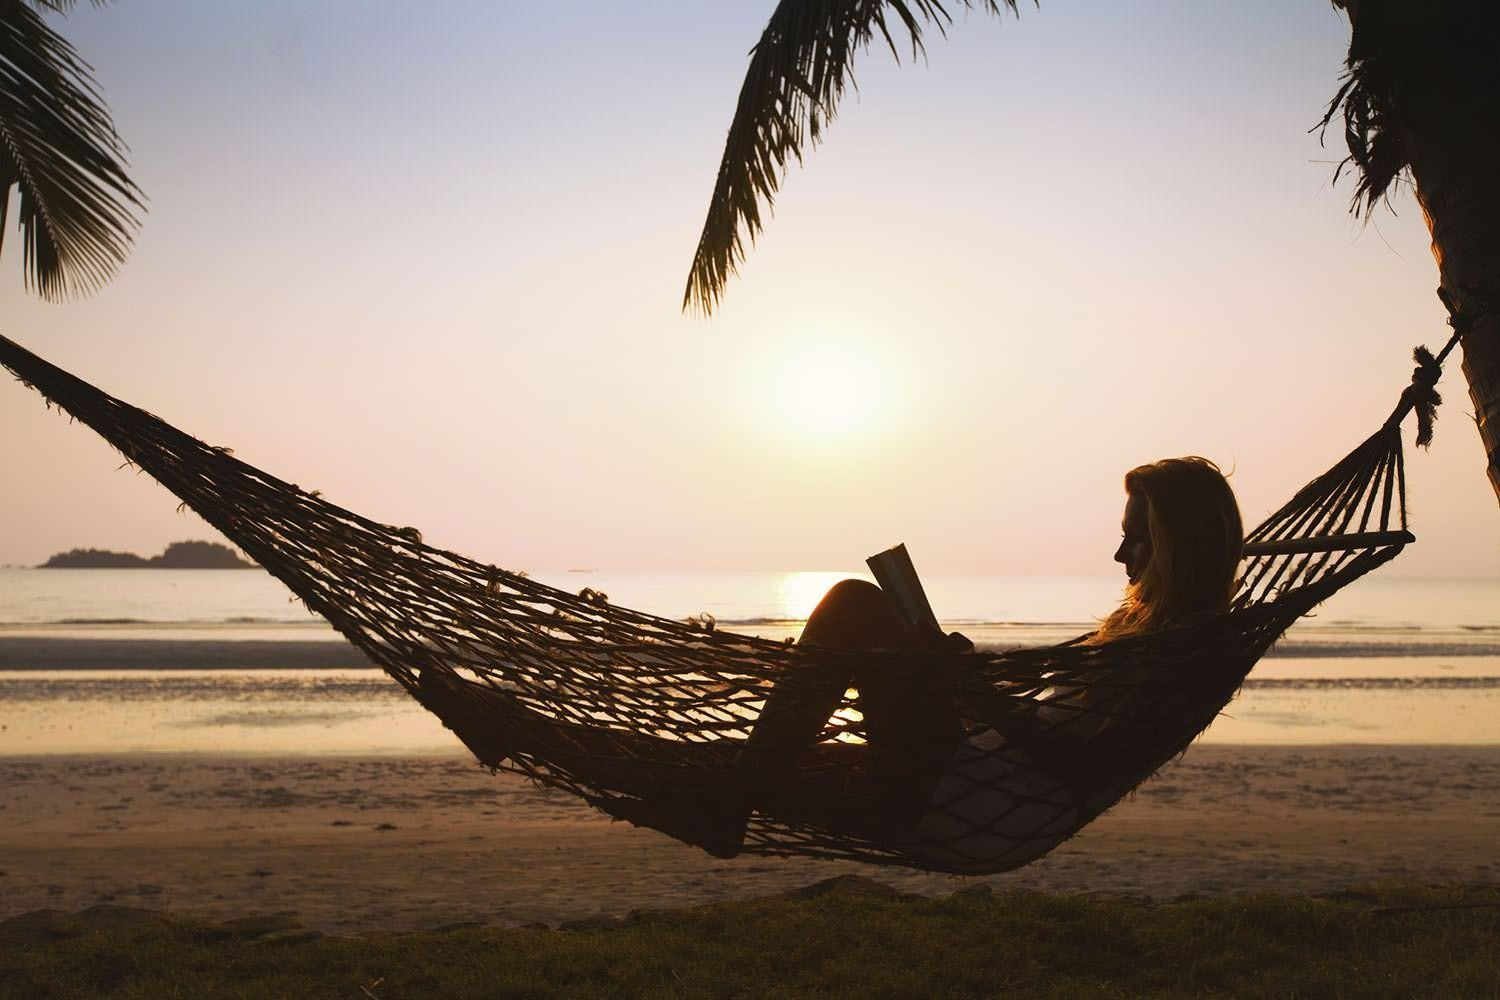 Armchair Traveler: 8 Great Summer Reads for the Escapist in All of Us